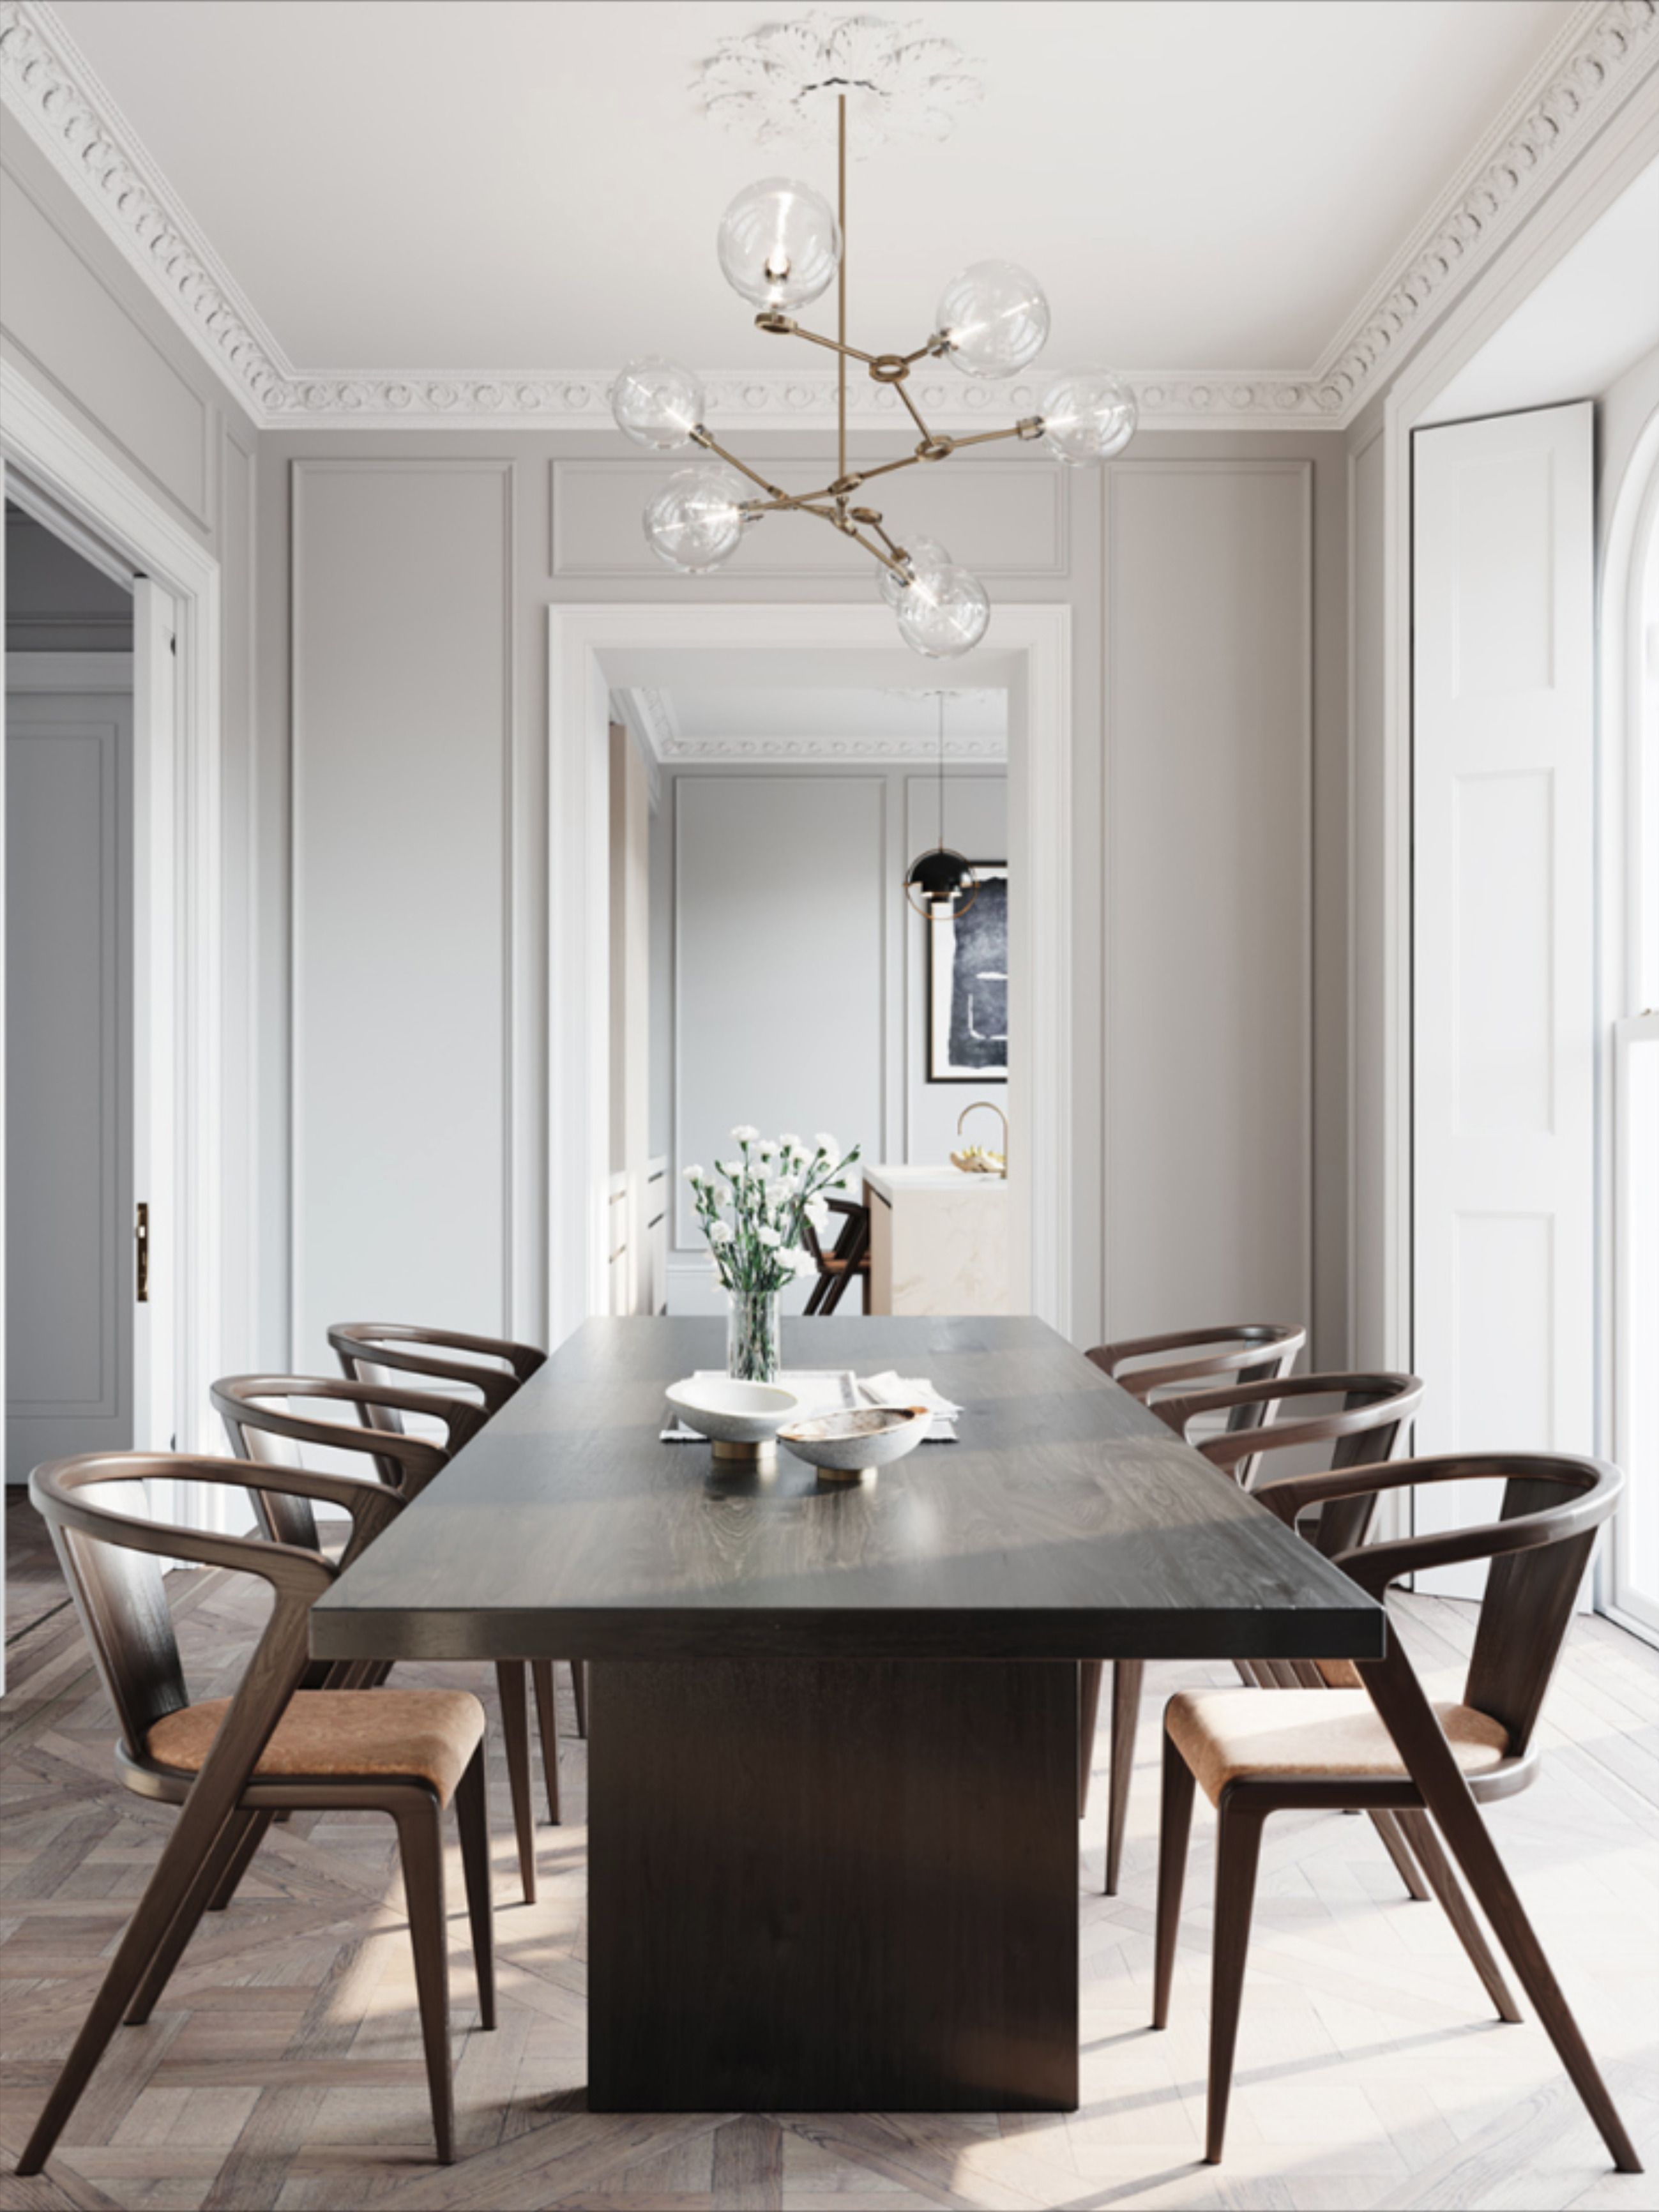 Elegant And Classic Home Design Modern Dining Room Dining Room Design Modern Classic Dining Room Contemporary dining room design